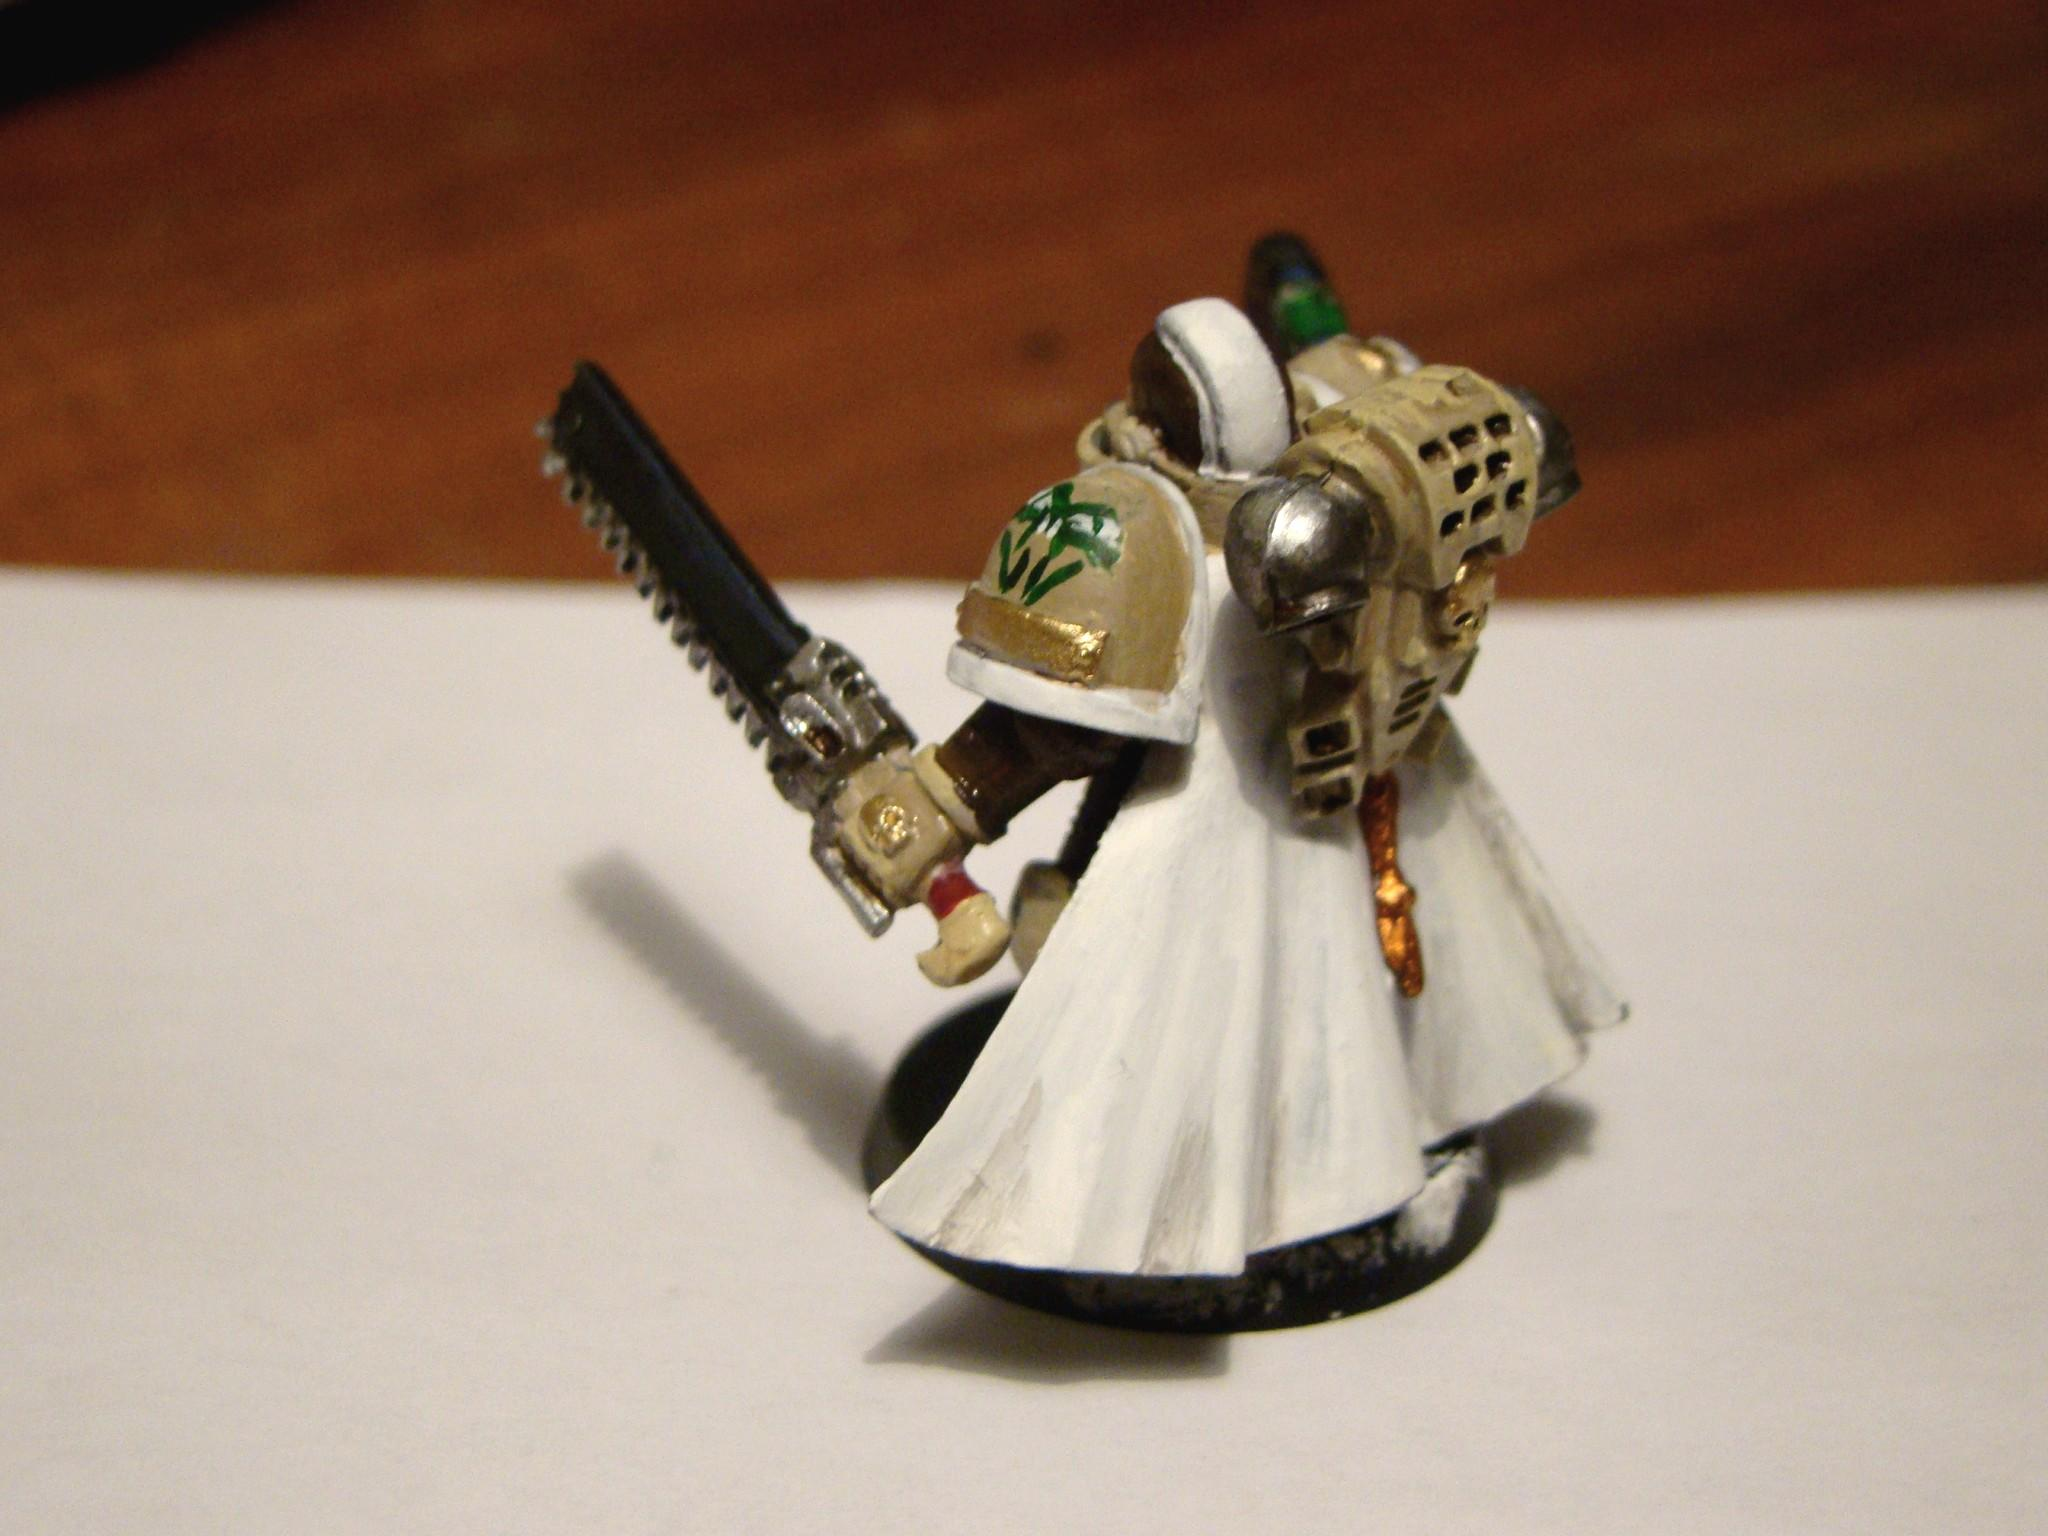 Sand Vipers, Space Marines, Warhammer 40,000